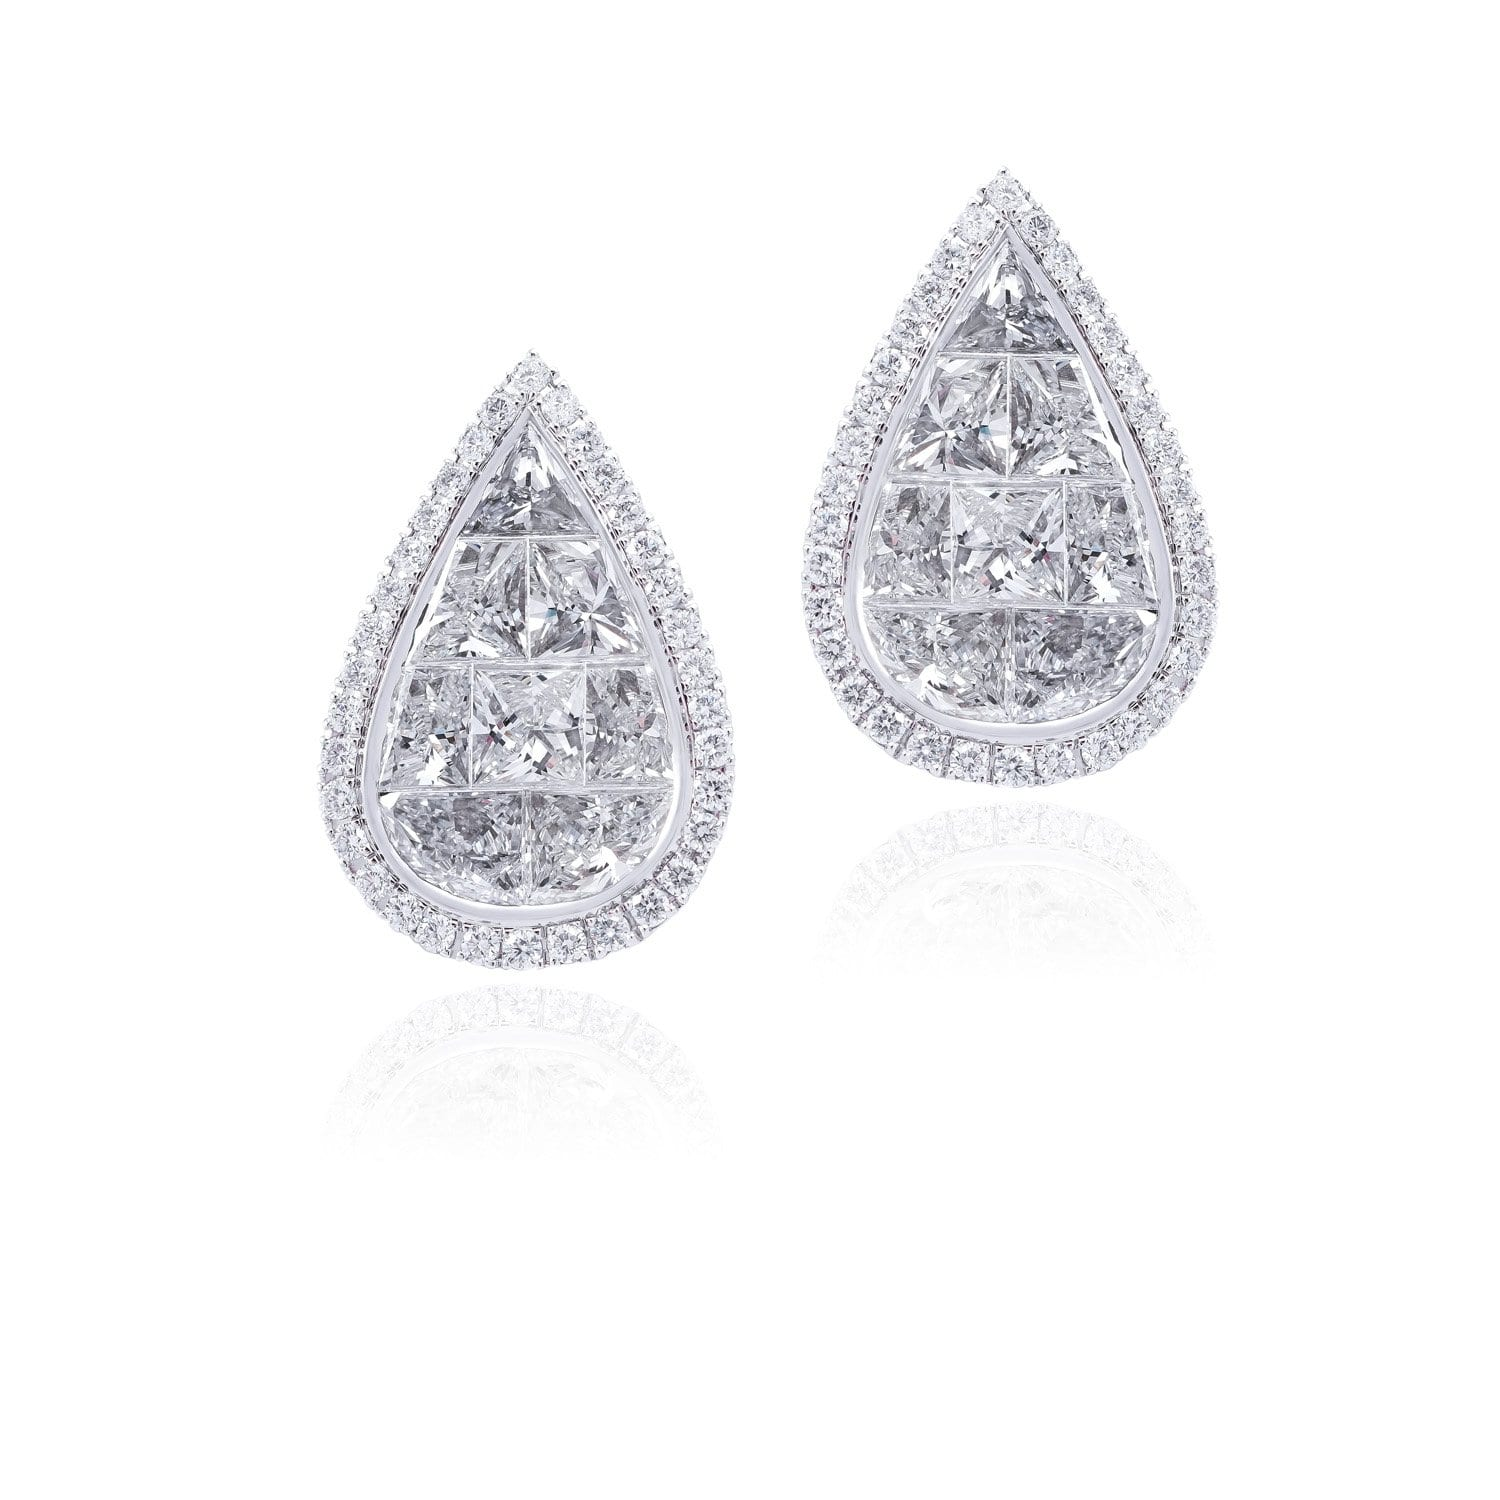 MUSE PEAR Earrings - STENZHORN JEWELLERY